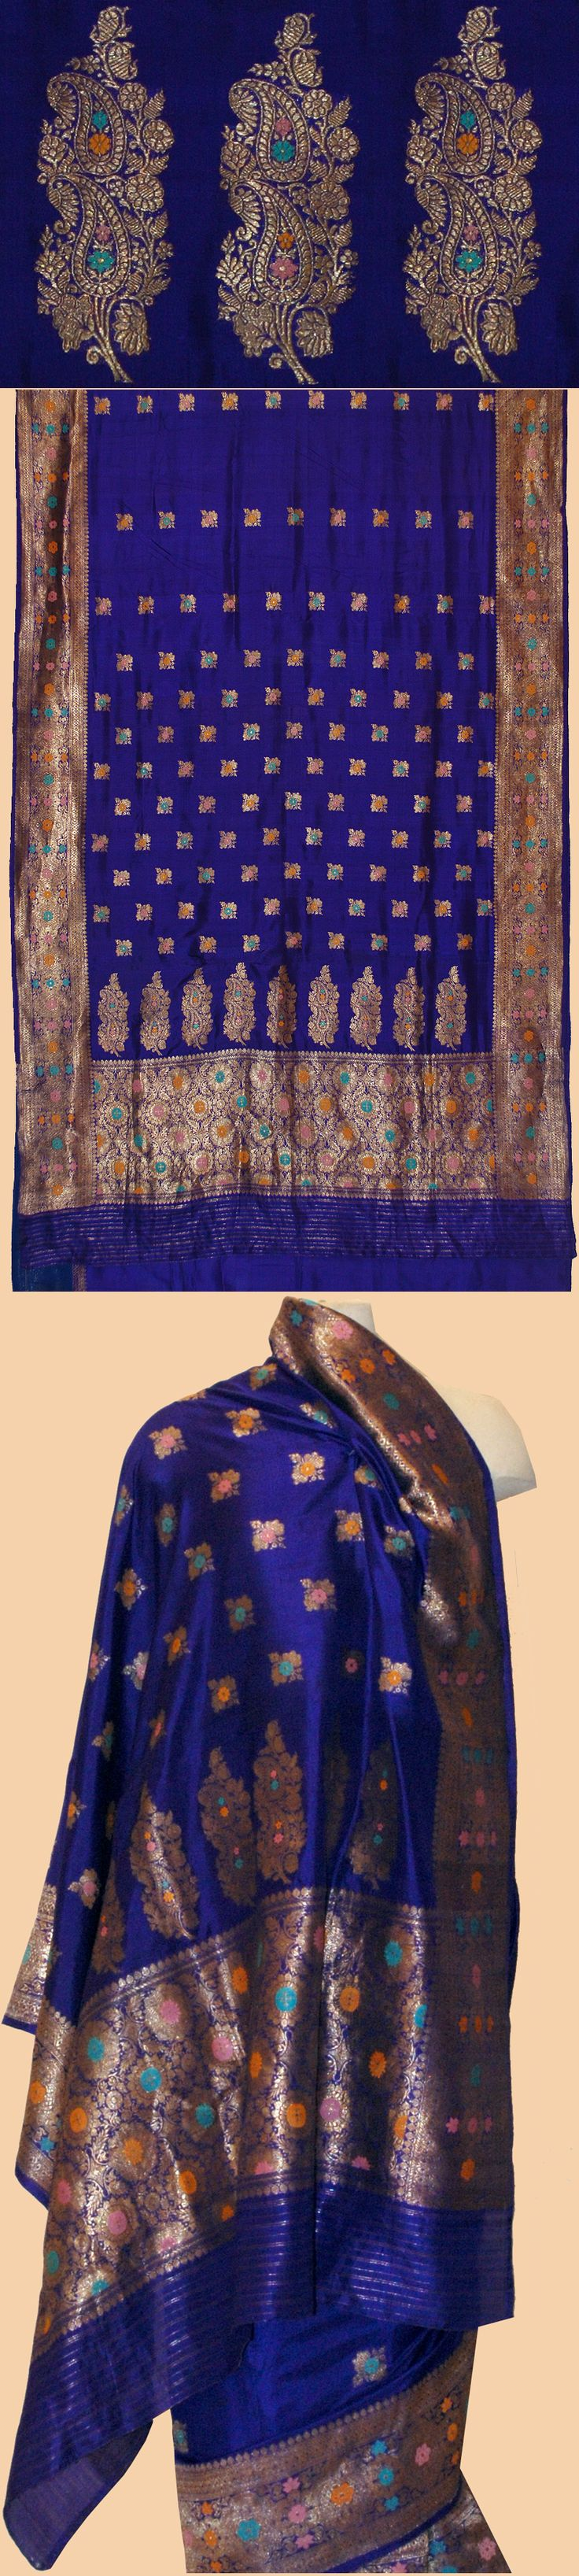 Antique Indian Sari. Silk Brocade with Gold Thread Sari   1800 - 1900 A.D